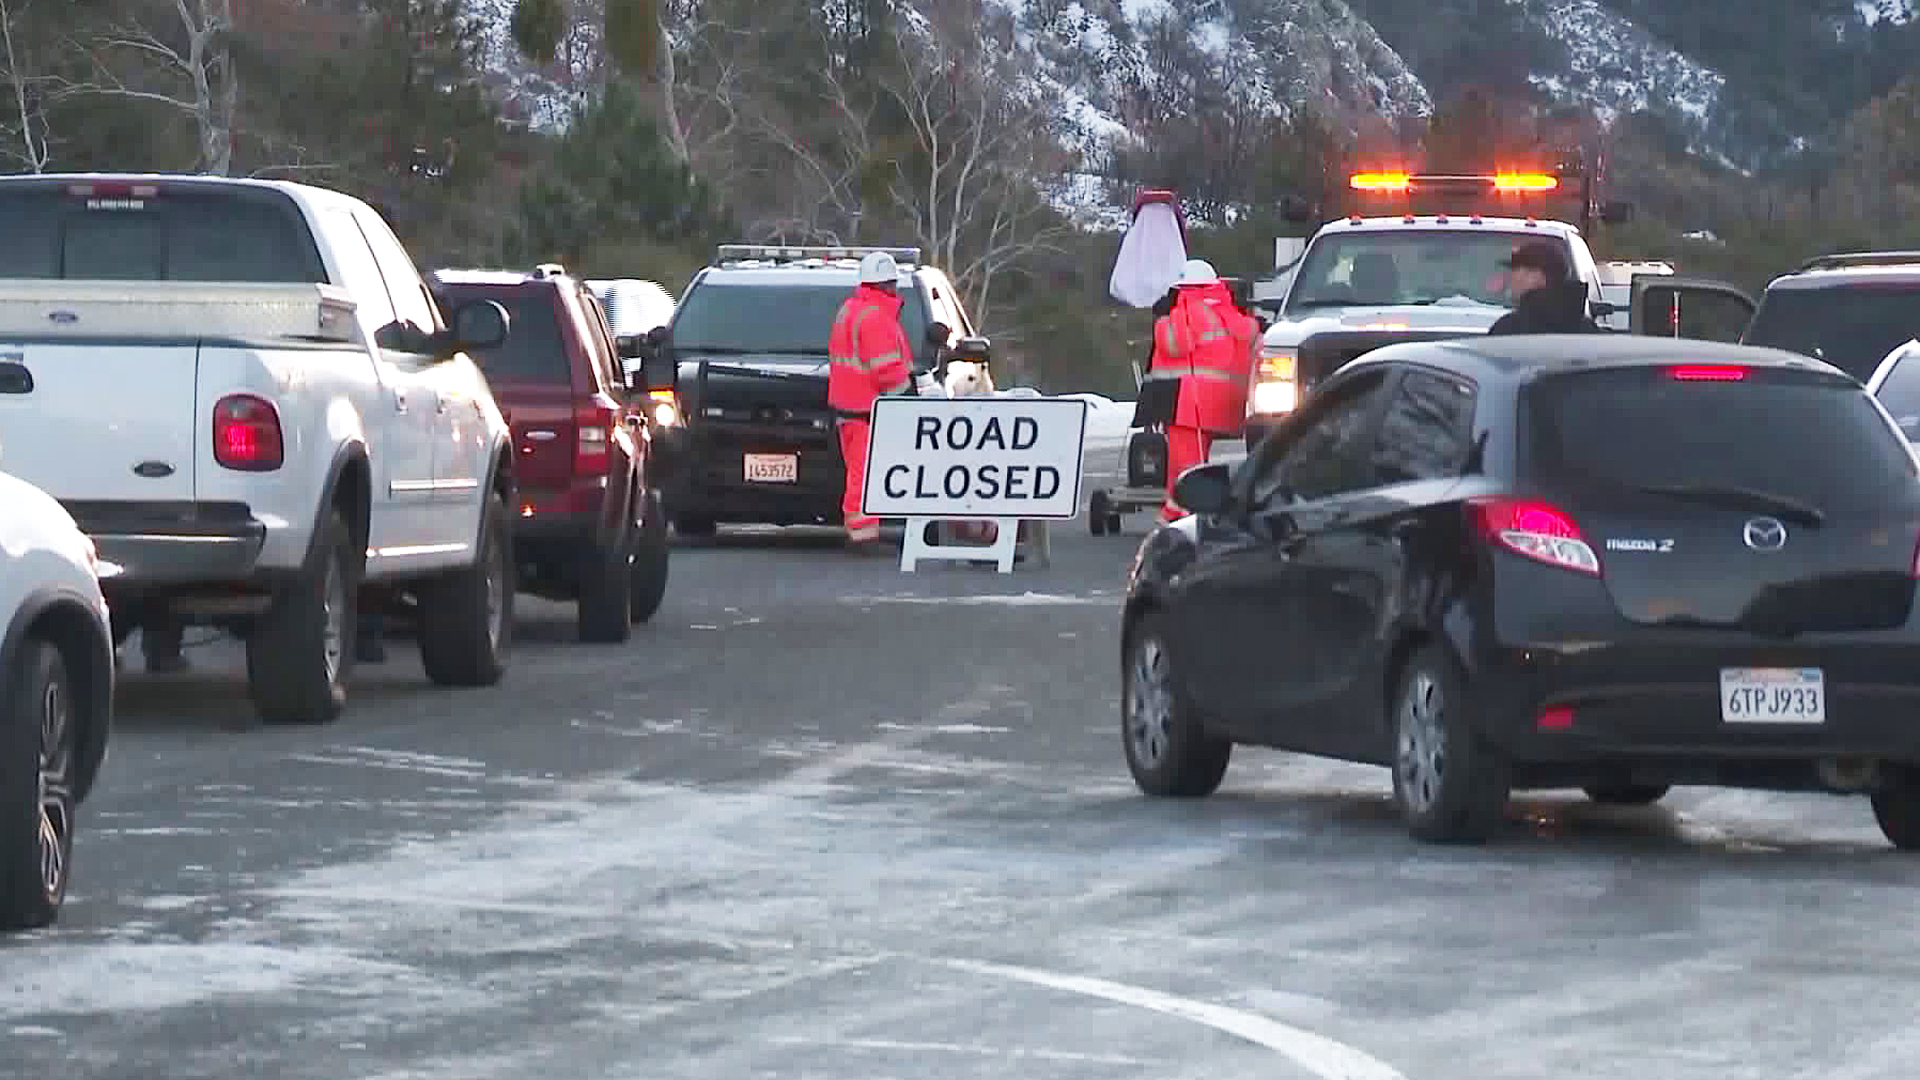 Drivers headed to big bear are stopped at a road closure. (Credit: KTLA)